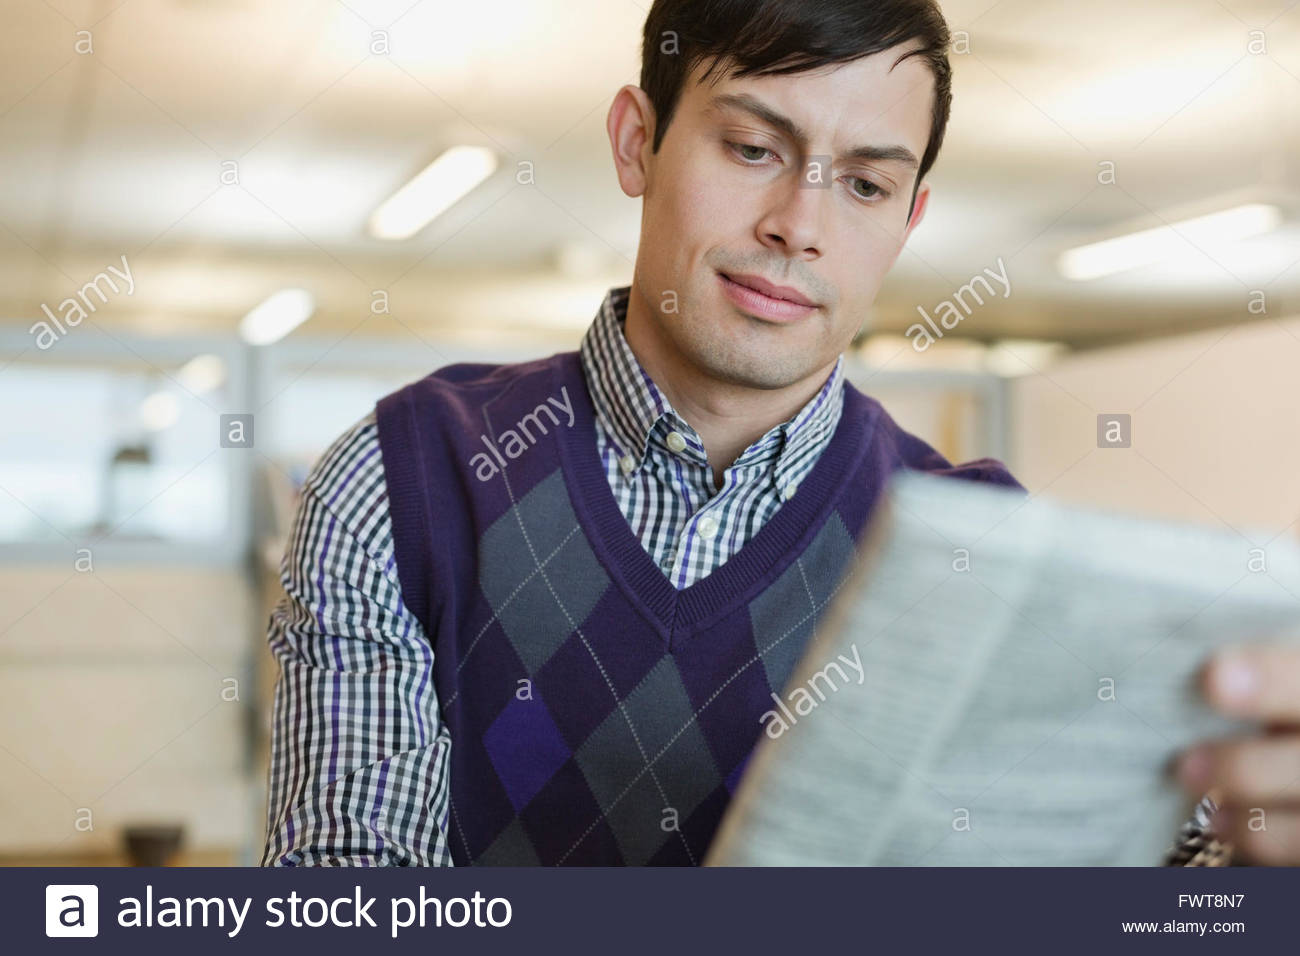 Businessman reading newspaper in office - Stock Image